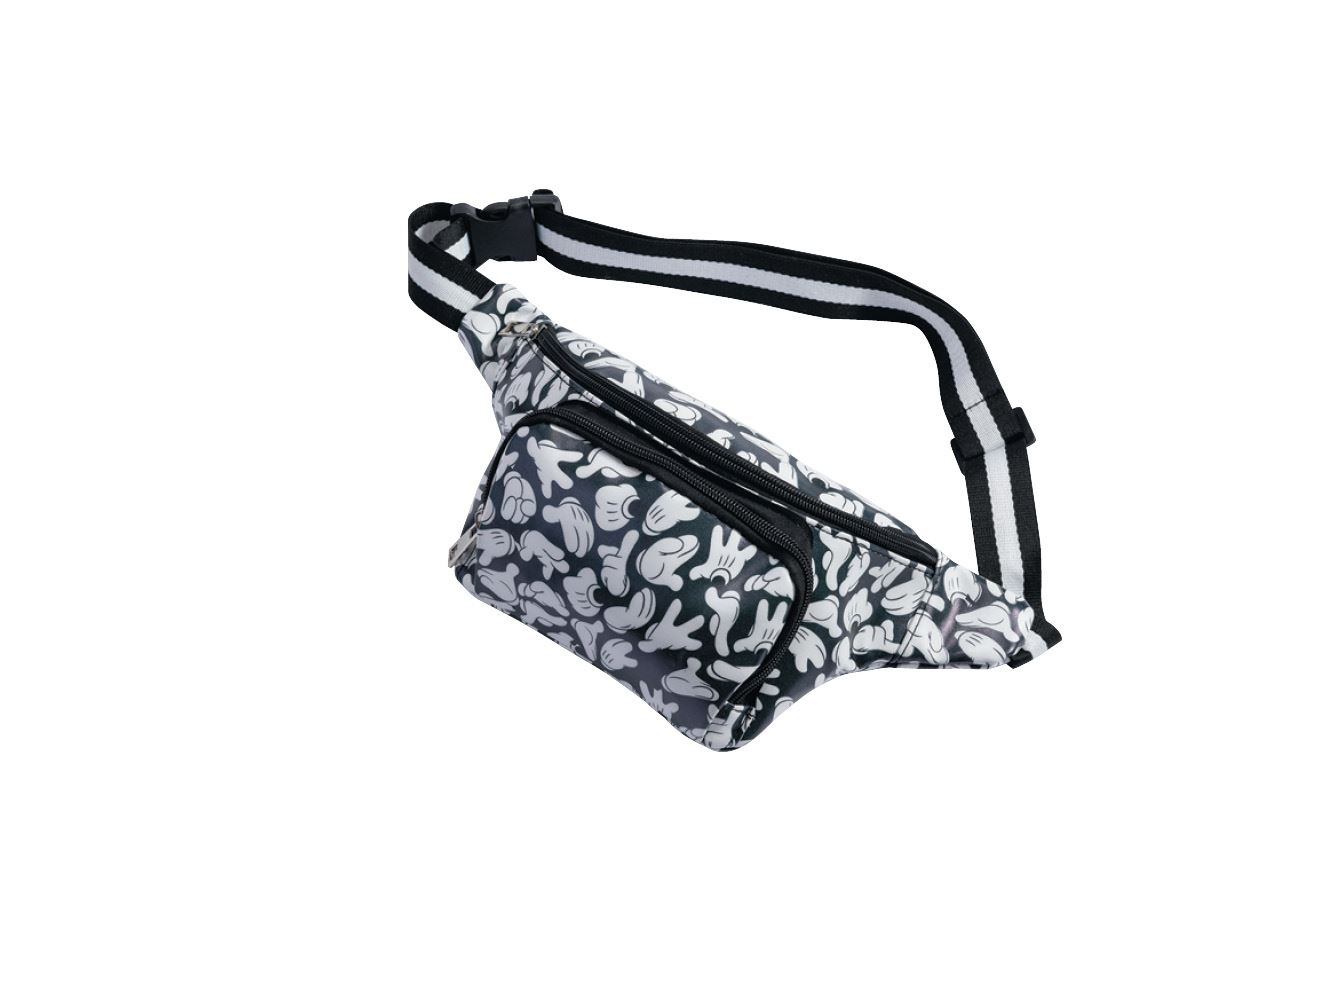 Black and White Travel Disney Classic Minnie Mouse Waist Pack Bum Bag